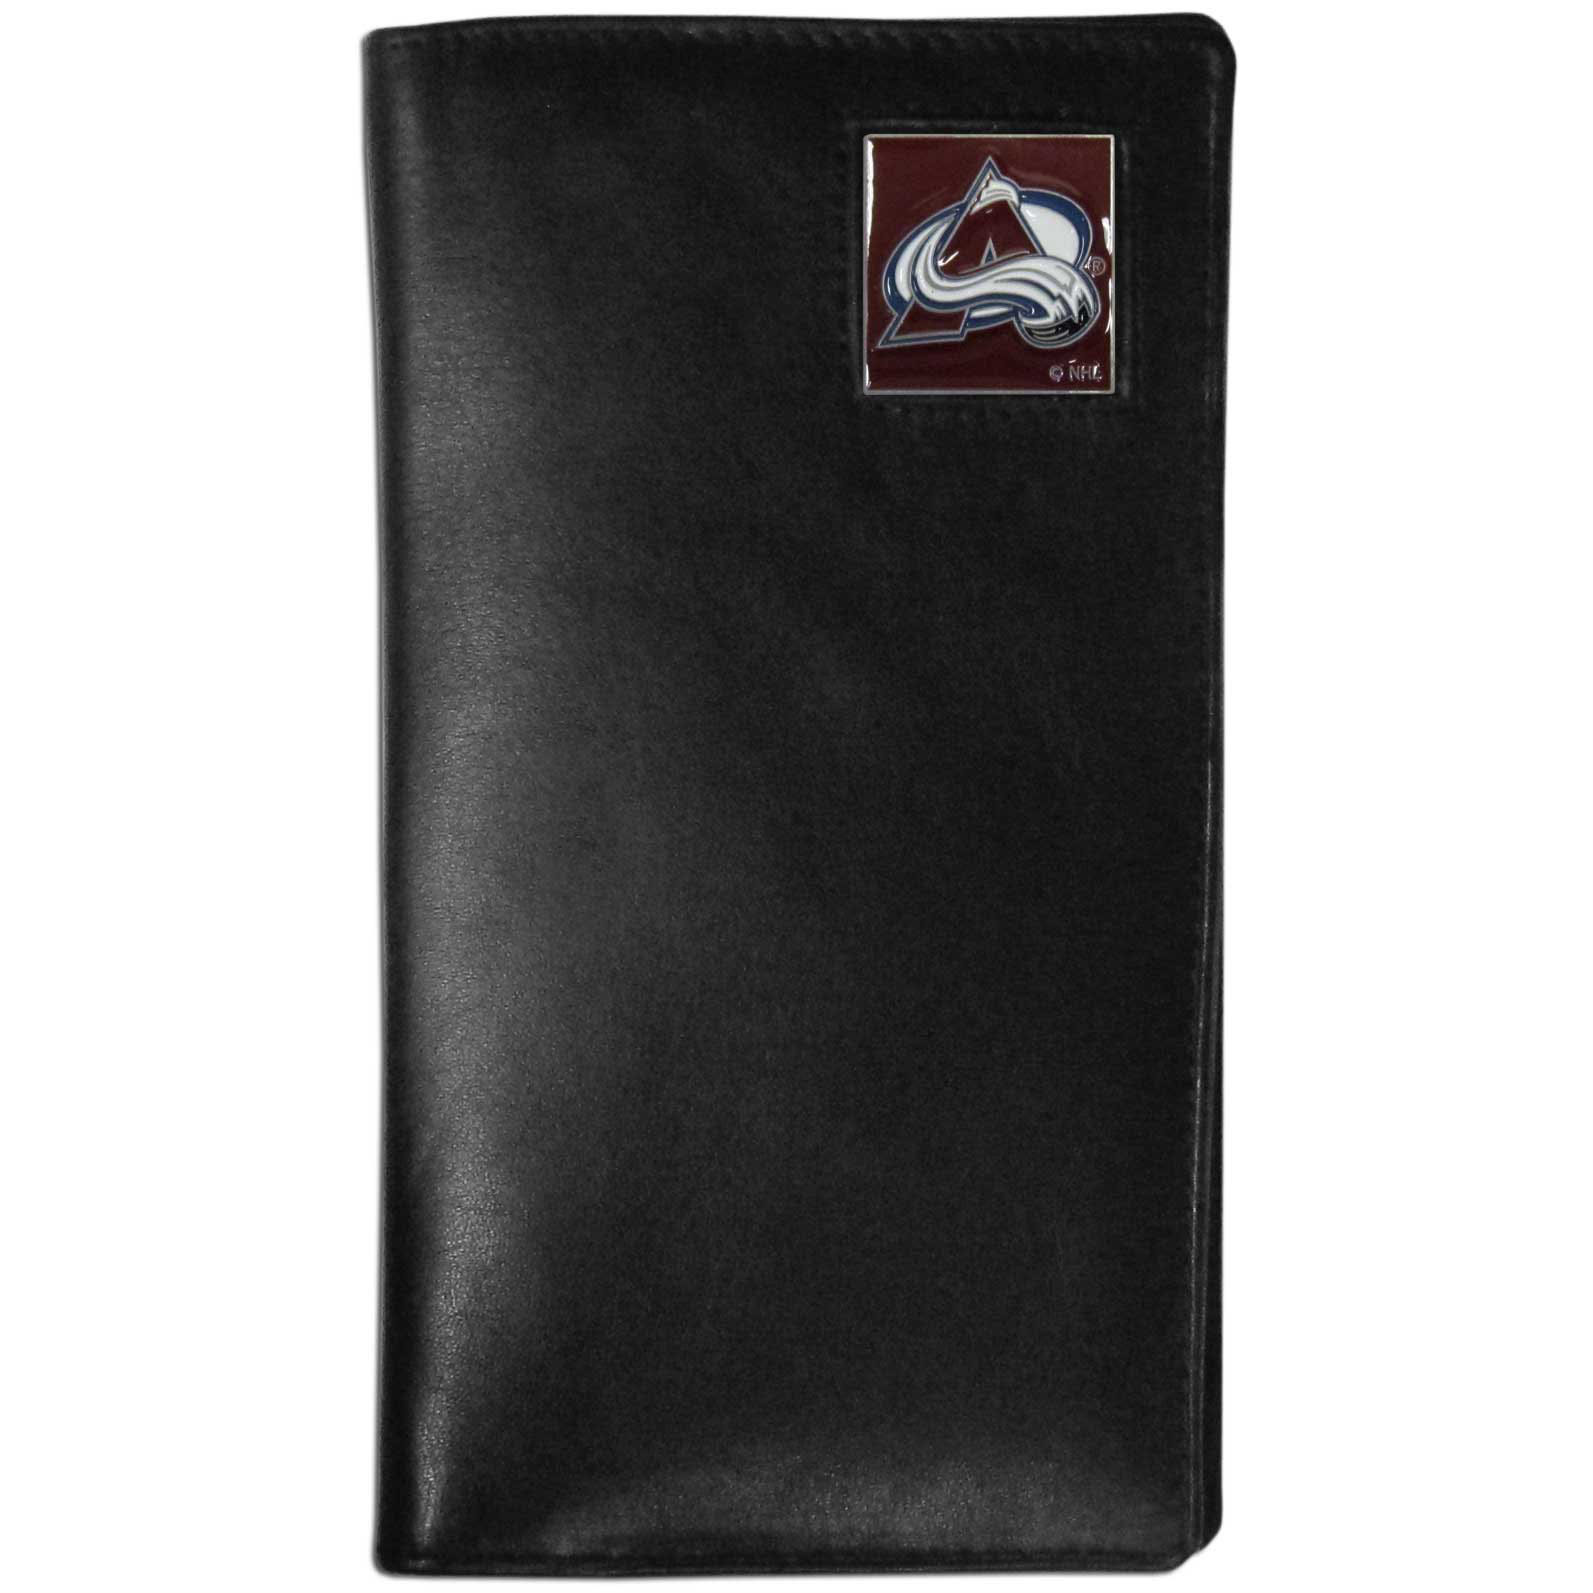 Colorado Avalanche Tall Leather Wallet - This officially licensed Colorado Avalanche tall leather wallet cover is made of high quality leather with a fully cast metal Colorado Avalanche emblem with enameled Colorado Avalanche color detail. The tall leather wallet cover fits both side and top loaded checks and includes a large zippered pocket, windowed ID slot, numerous credit card slots and billfold pocket. Thank you for visiting CrazedOutSports